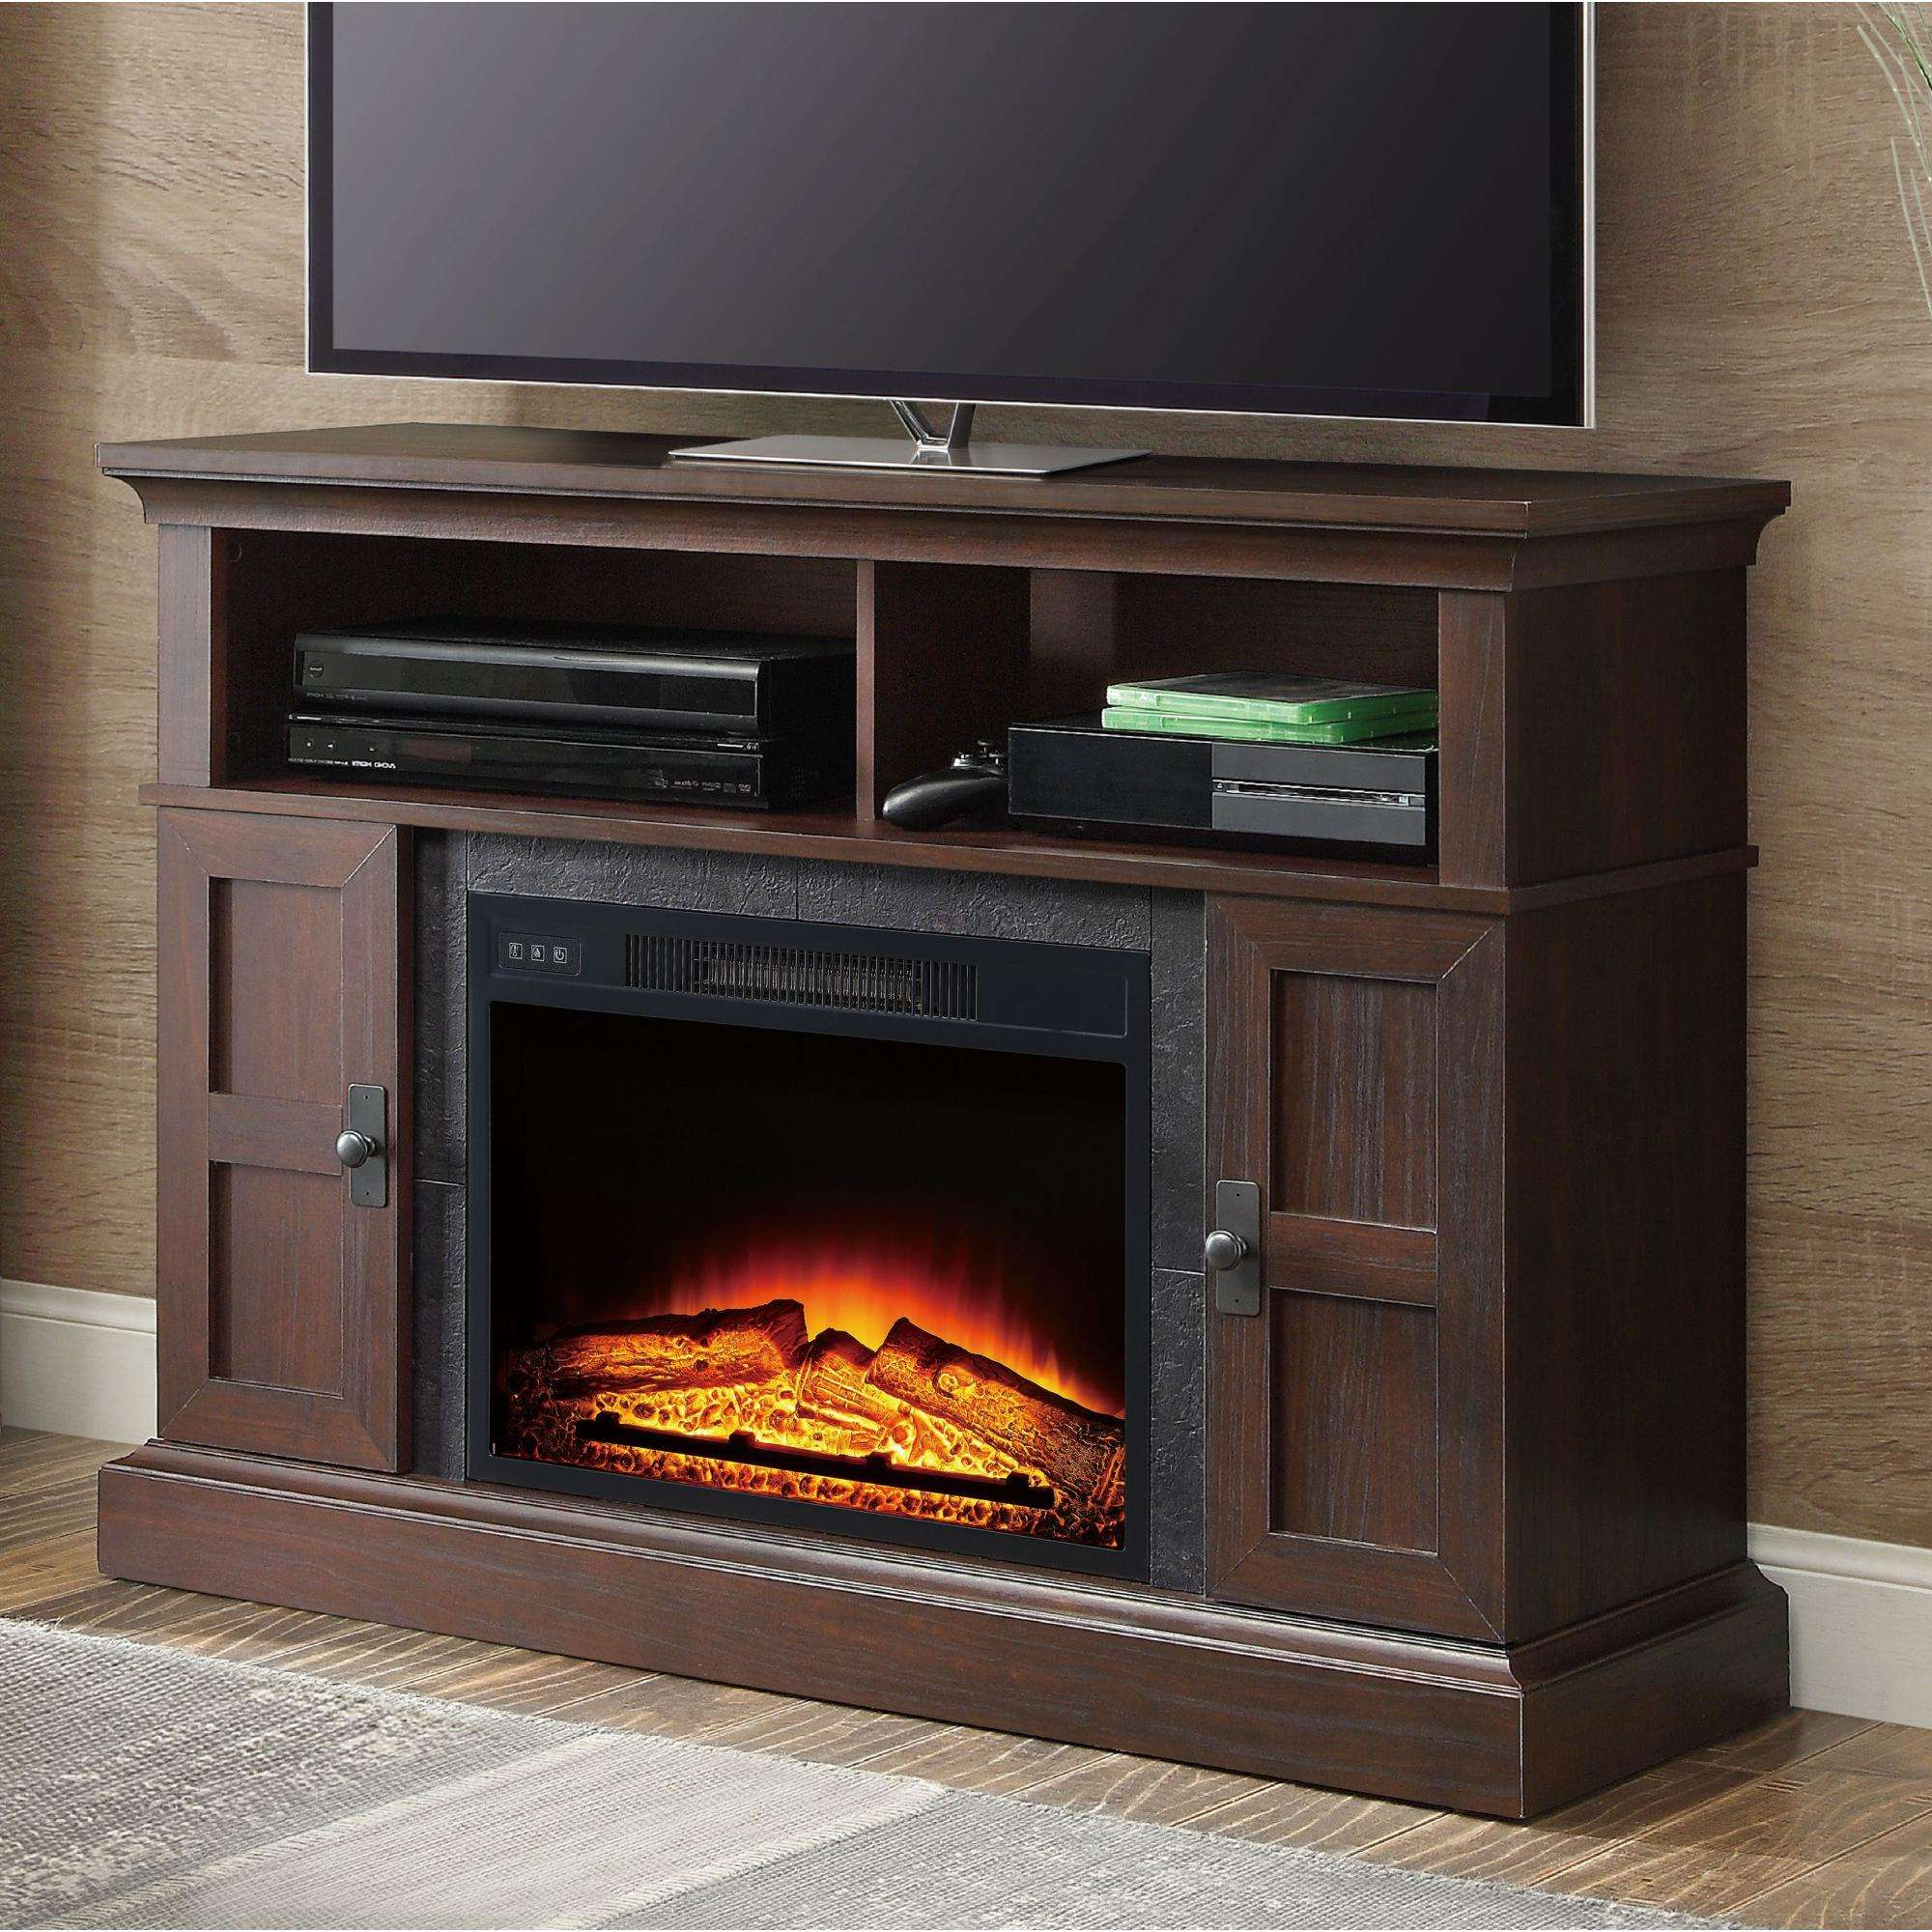 Whalen Media Fireplace For Your Home Television Stand Fits With Mainstays 4 Cube Tv Stands In Multiple Finishes (View 9 of 20)